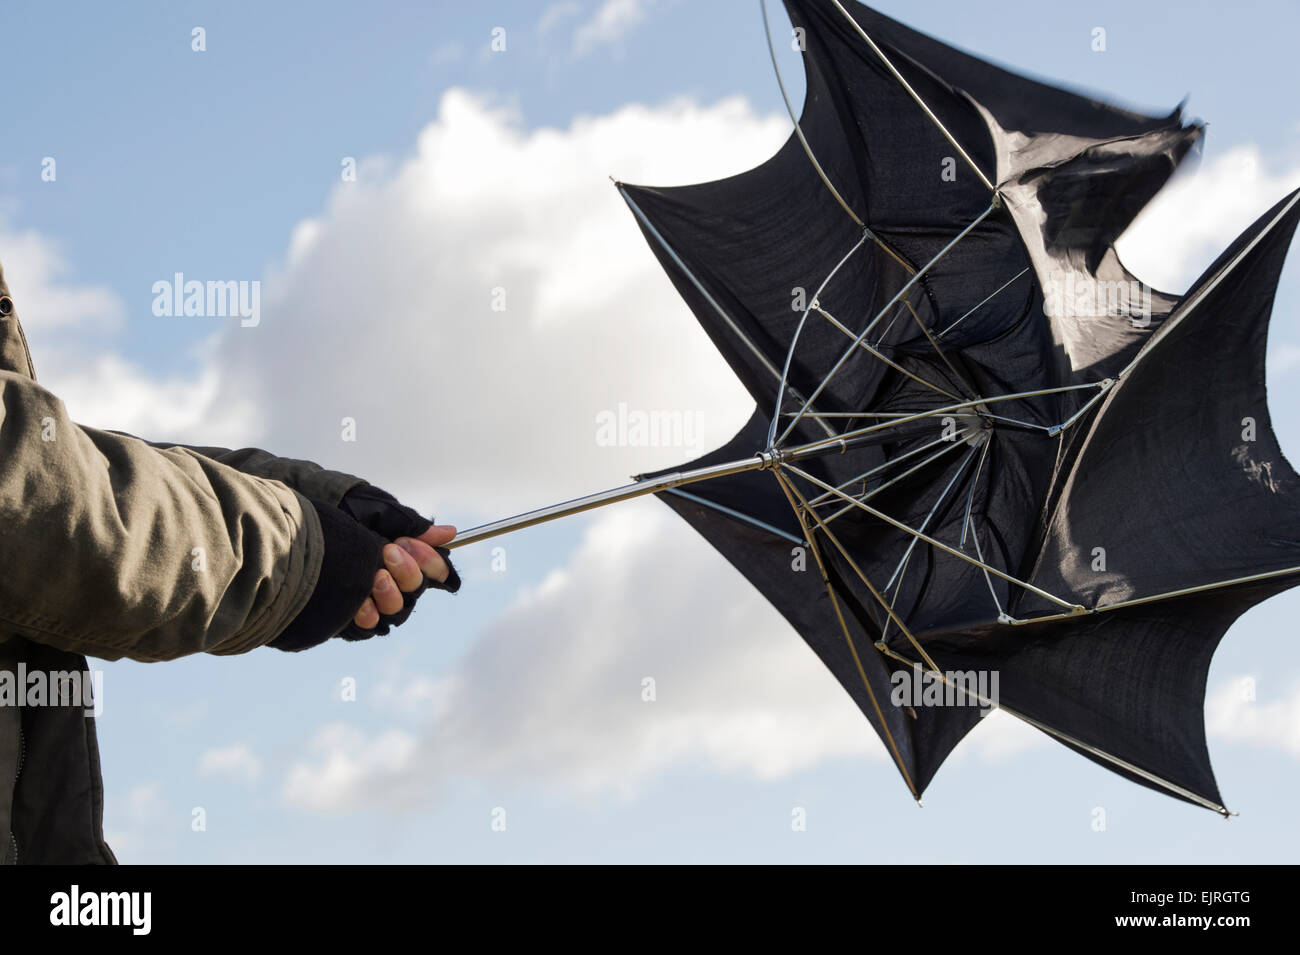 Man holding an umbrella in gale force winds - Stock Image